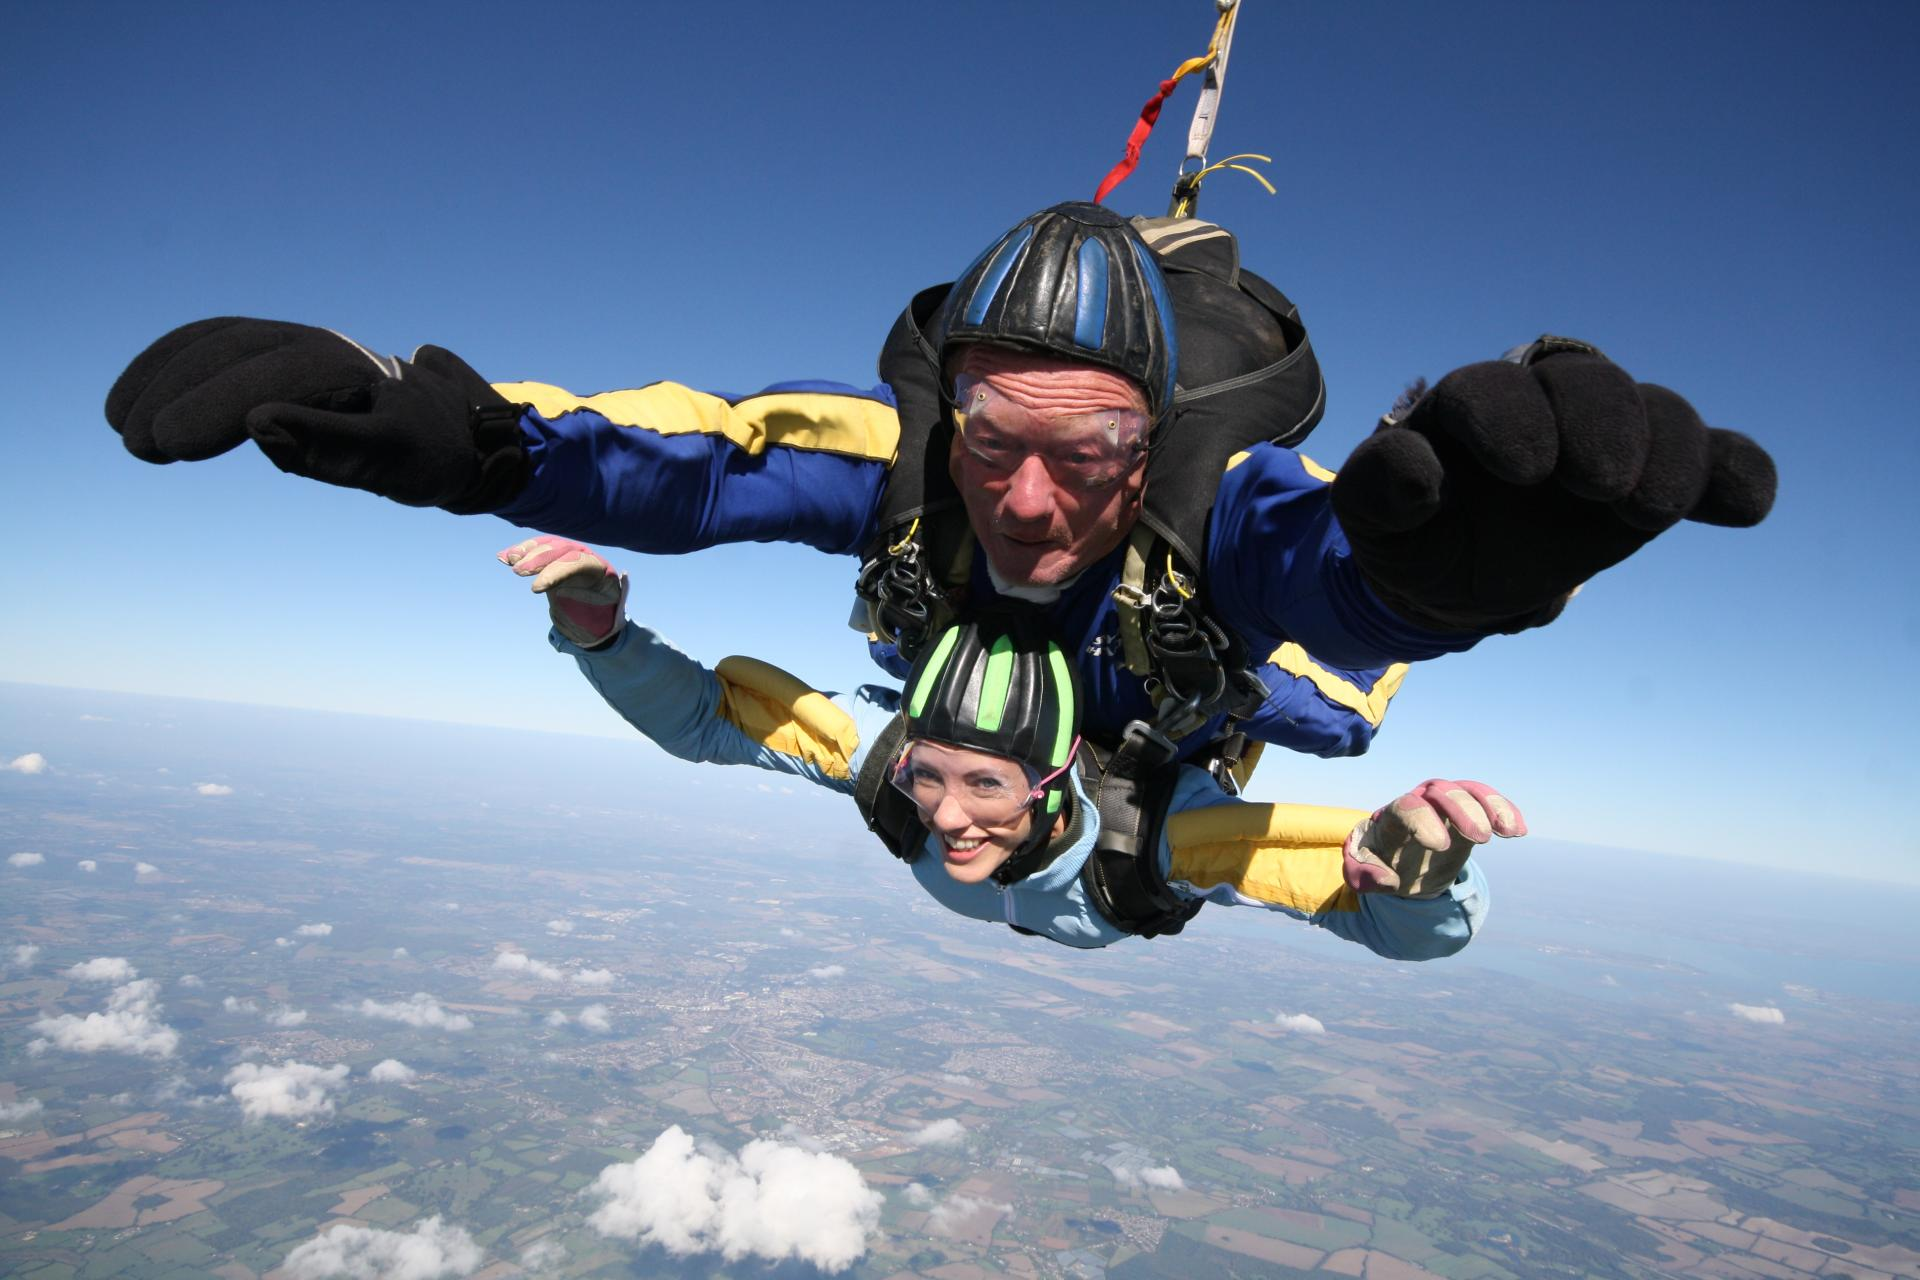 Picture of Zoe while skydiving